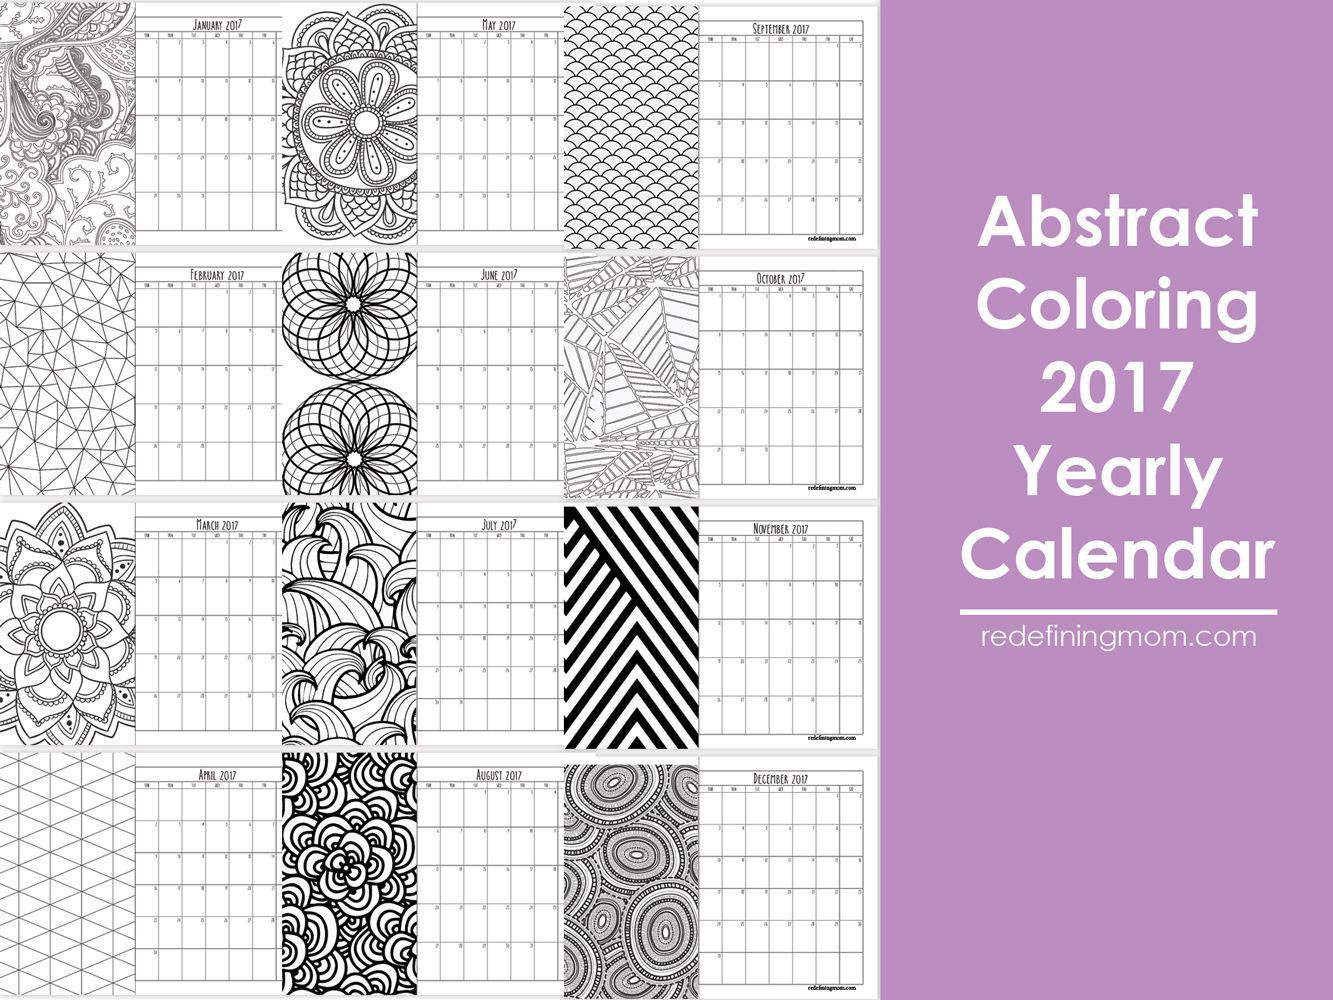 DonT Miss This Free Printable Abstract Adult Coloring